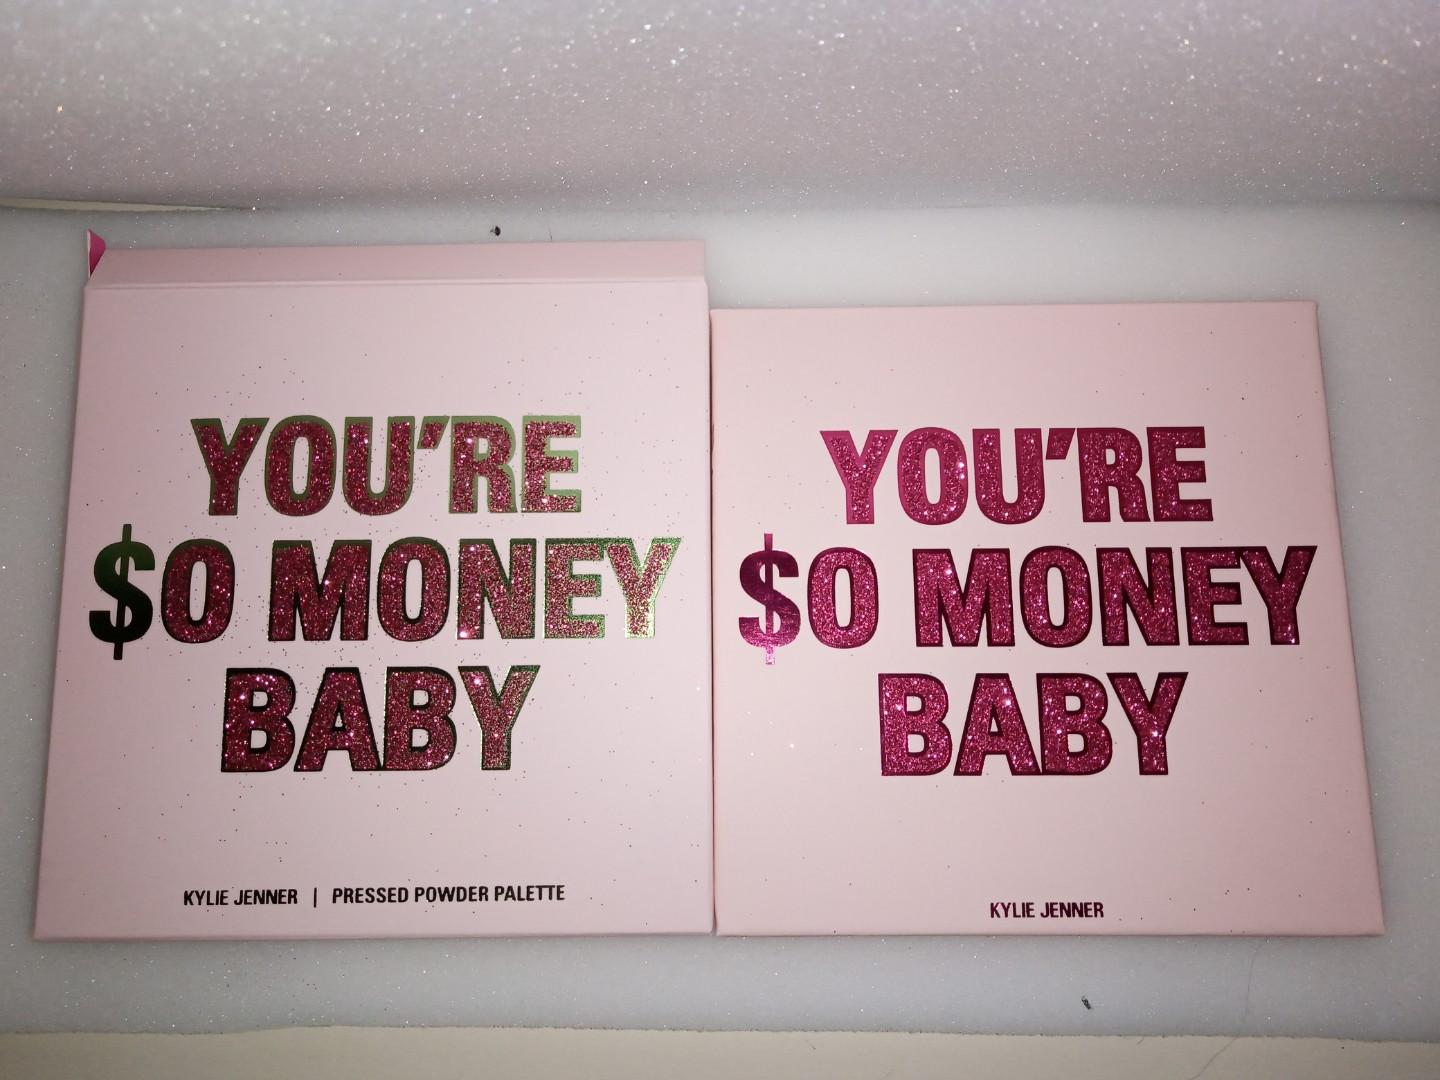 Kylie cosmetics - your so money baby eyeshadow palette.